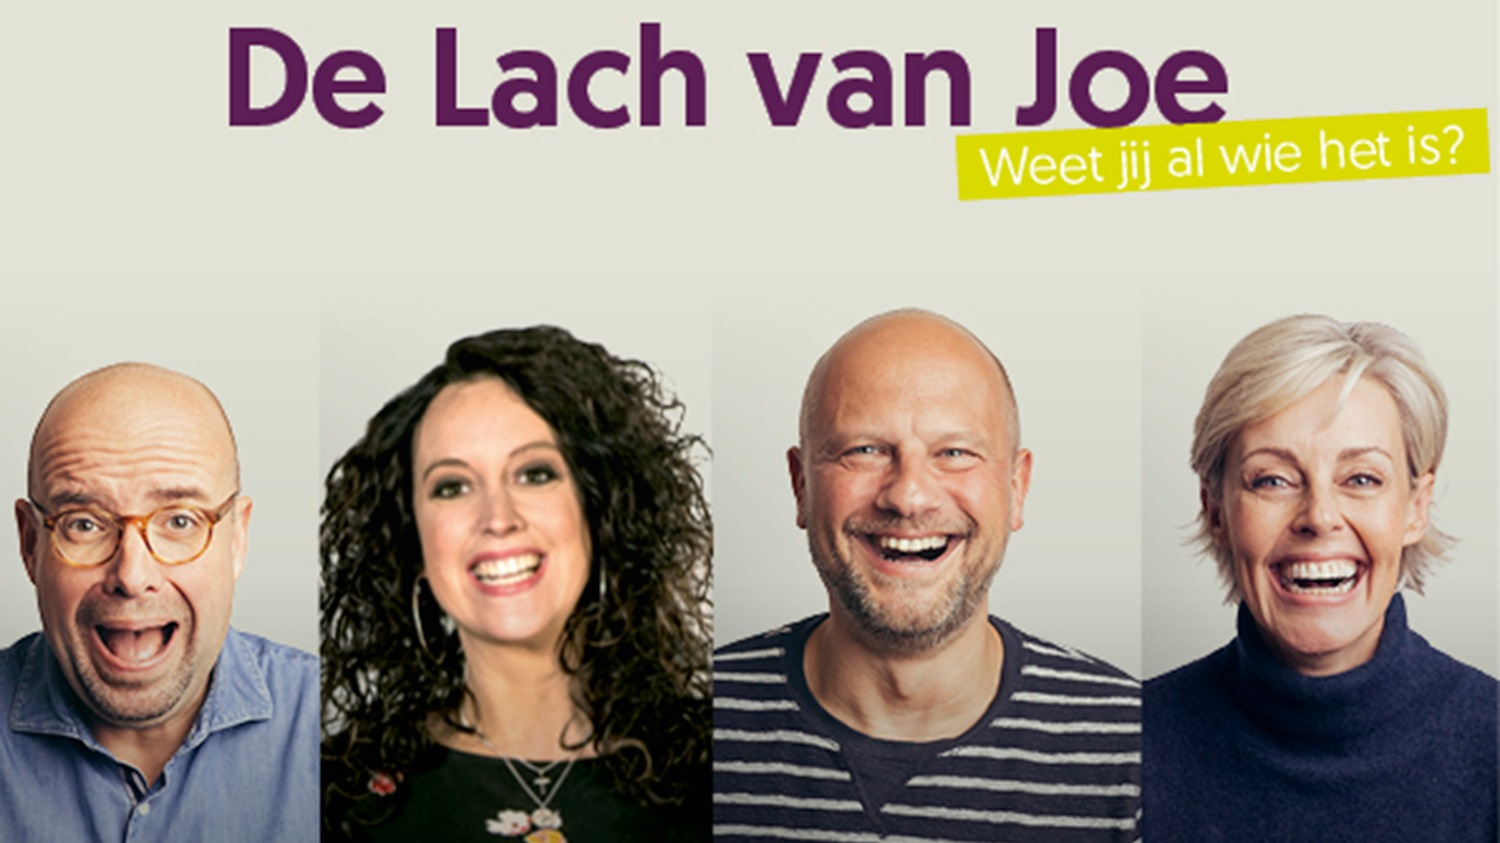 De lach van joe site